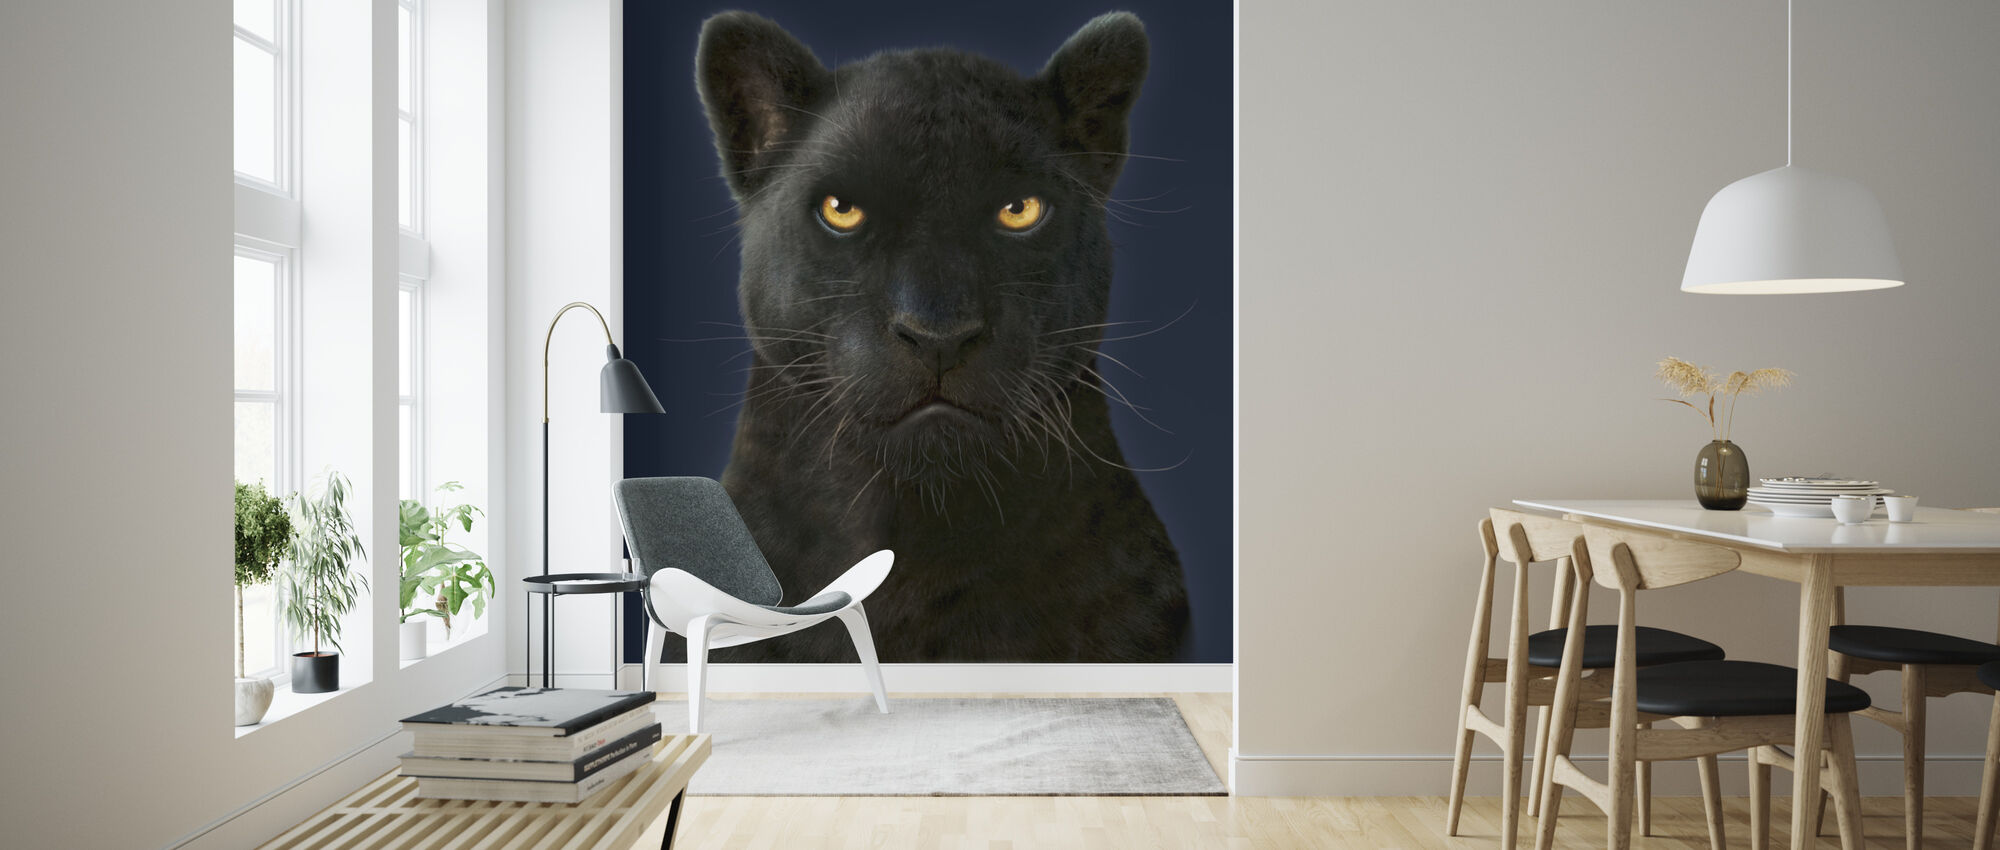 Black Panther Portrait High Quality Wall Murals With Free Us Delivery Photowall